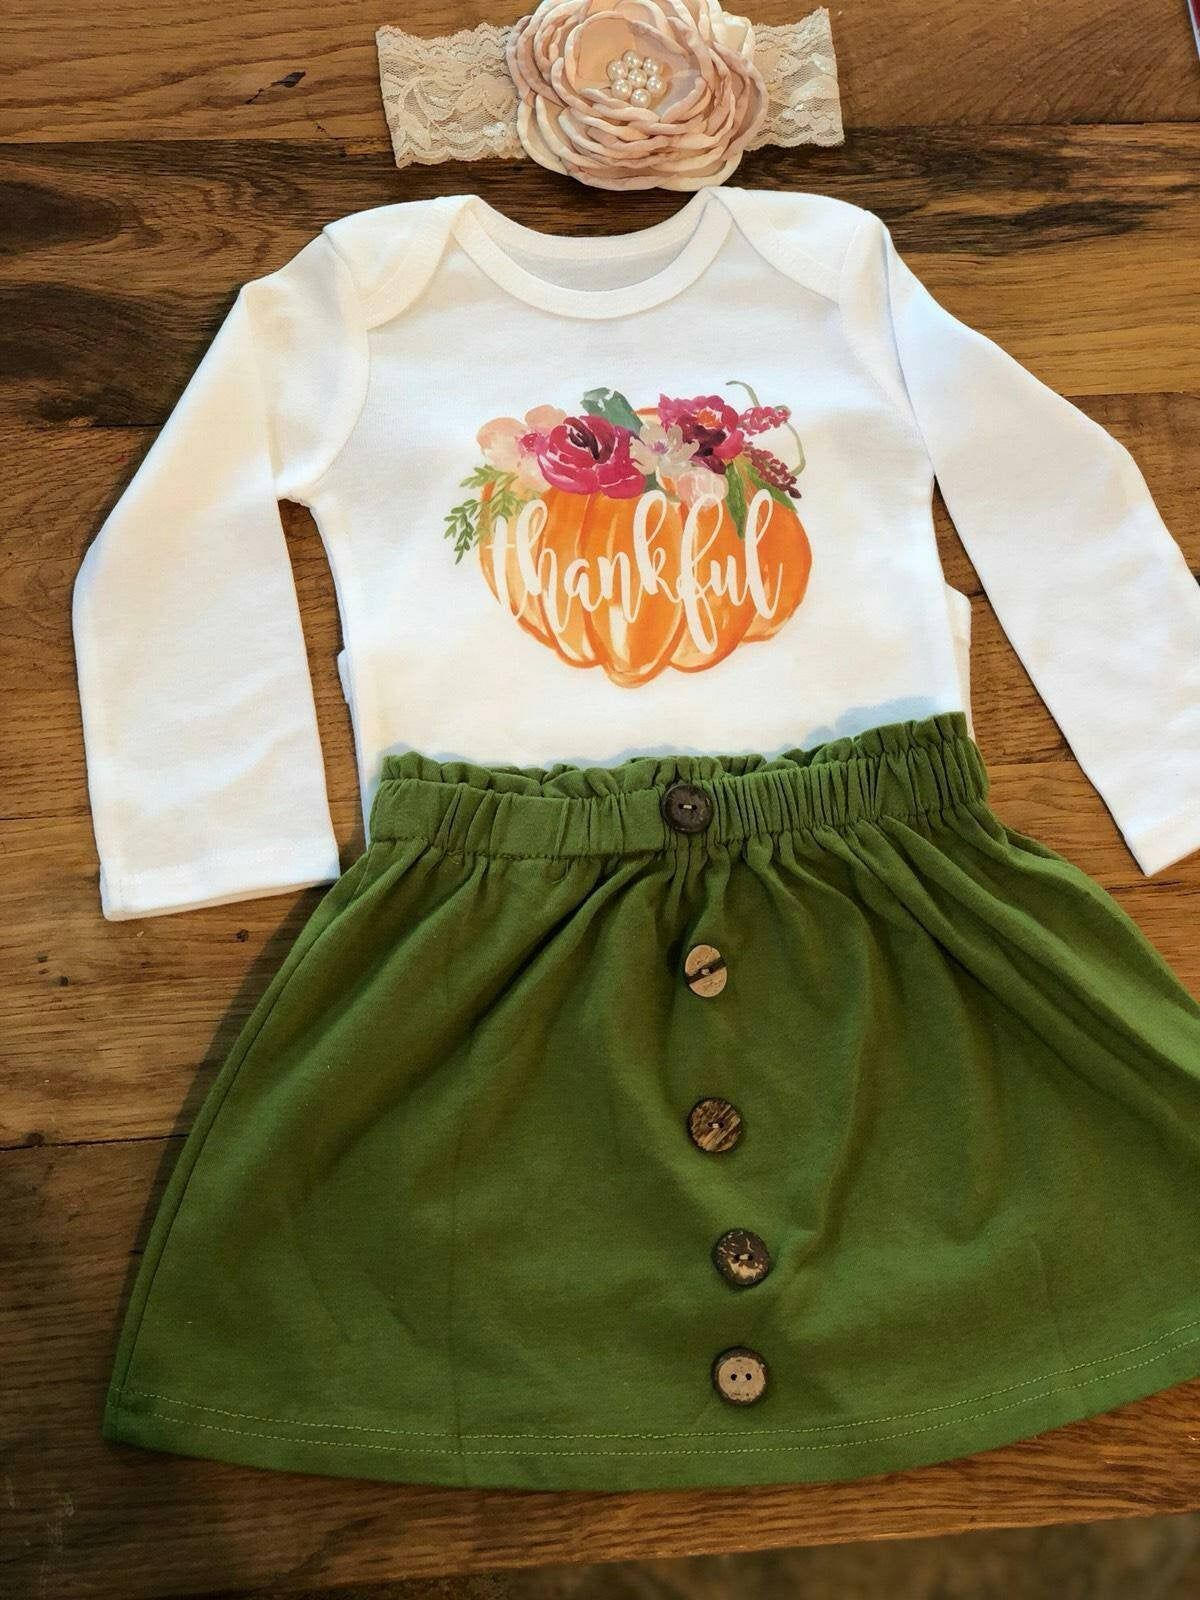 56d94a945656e Thankful Dress